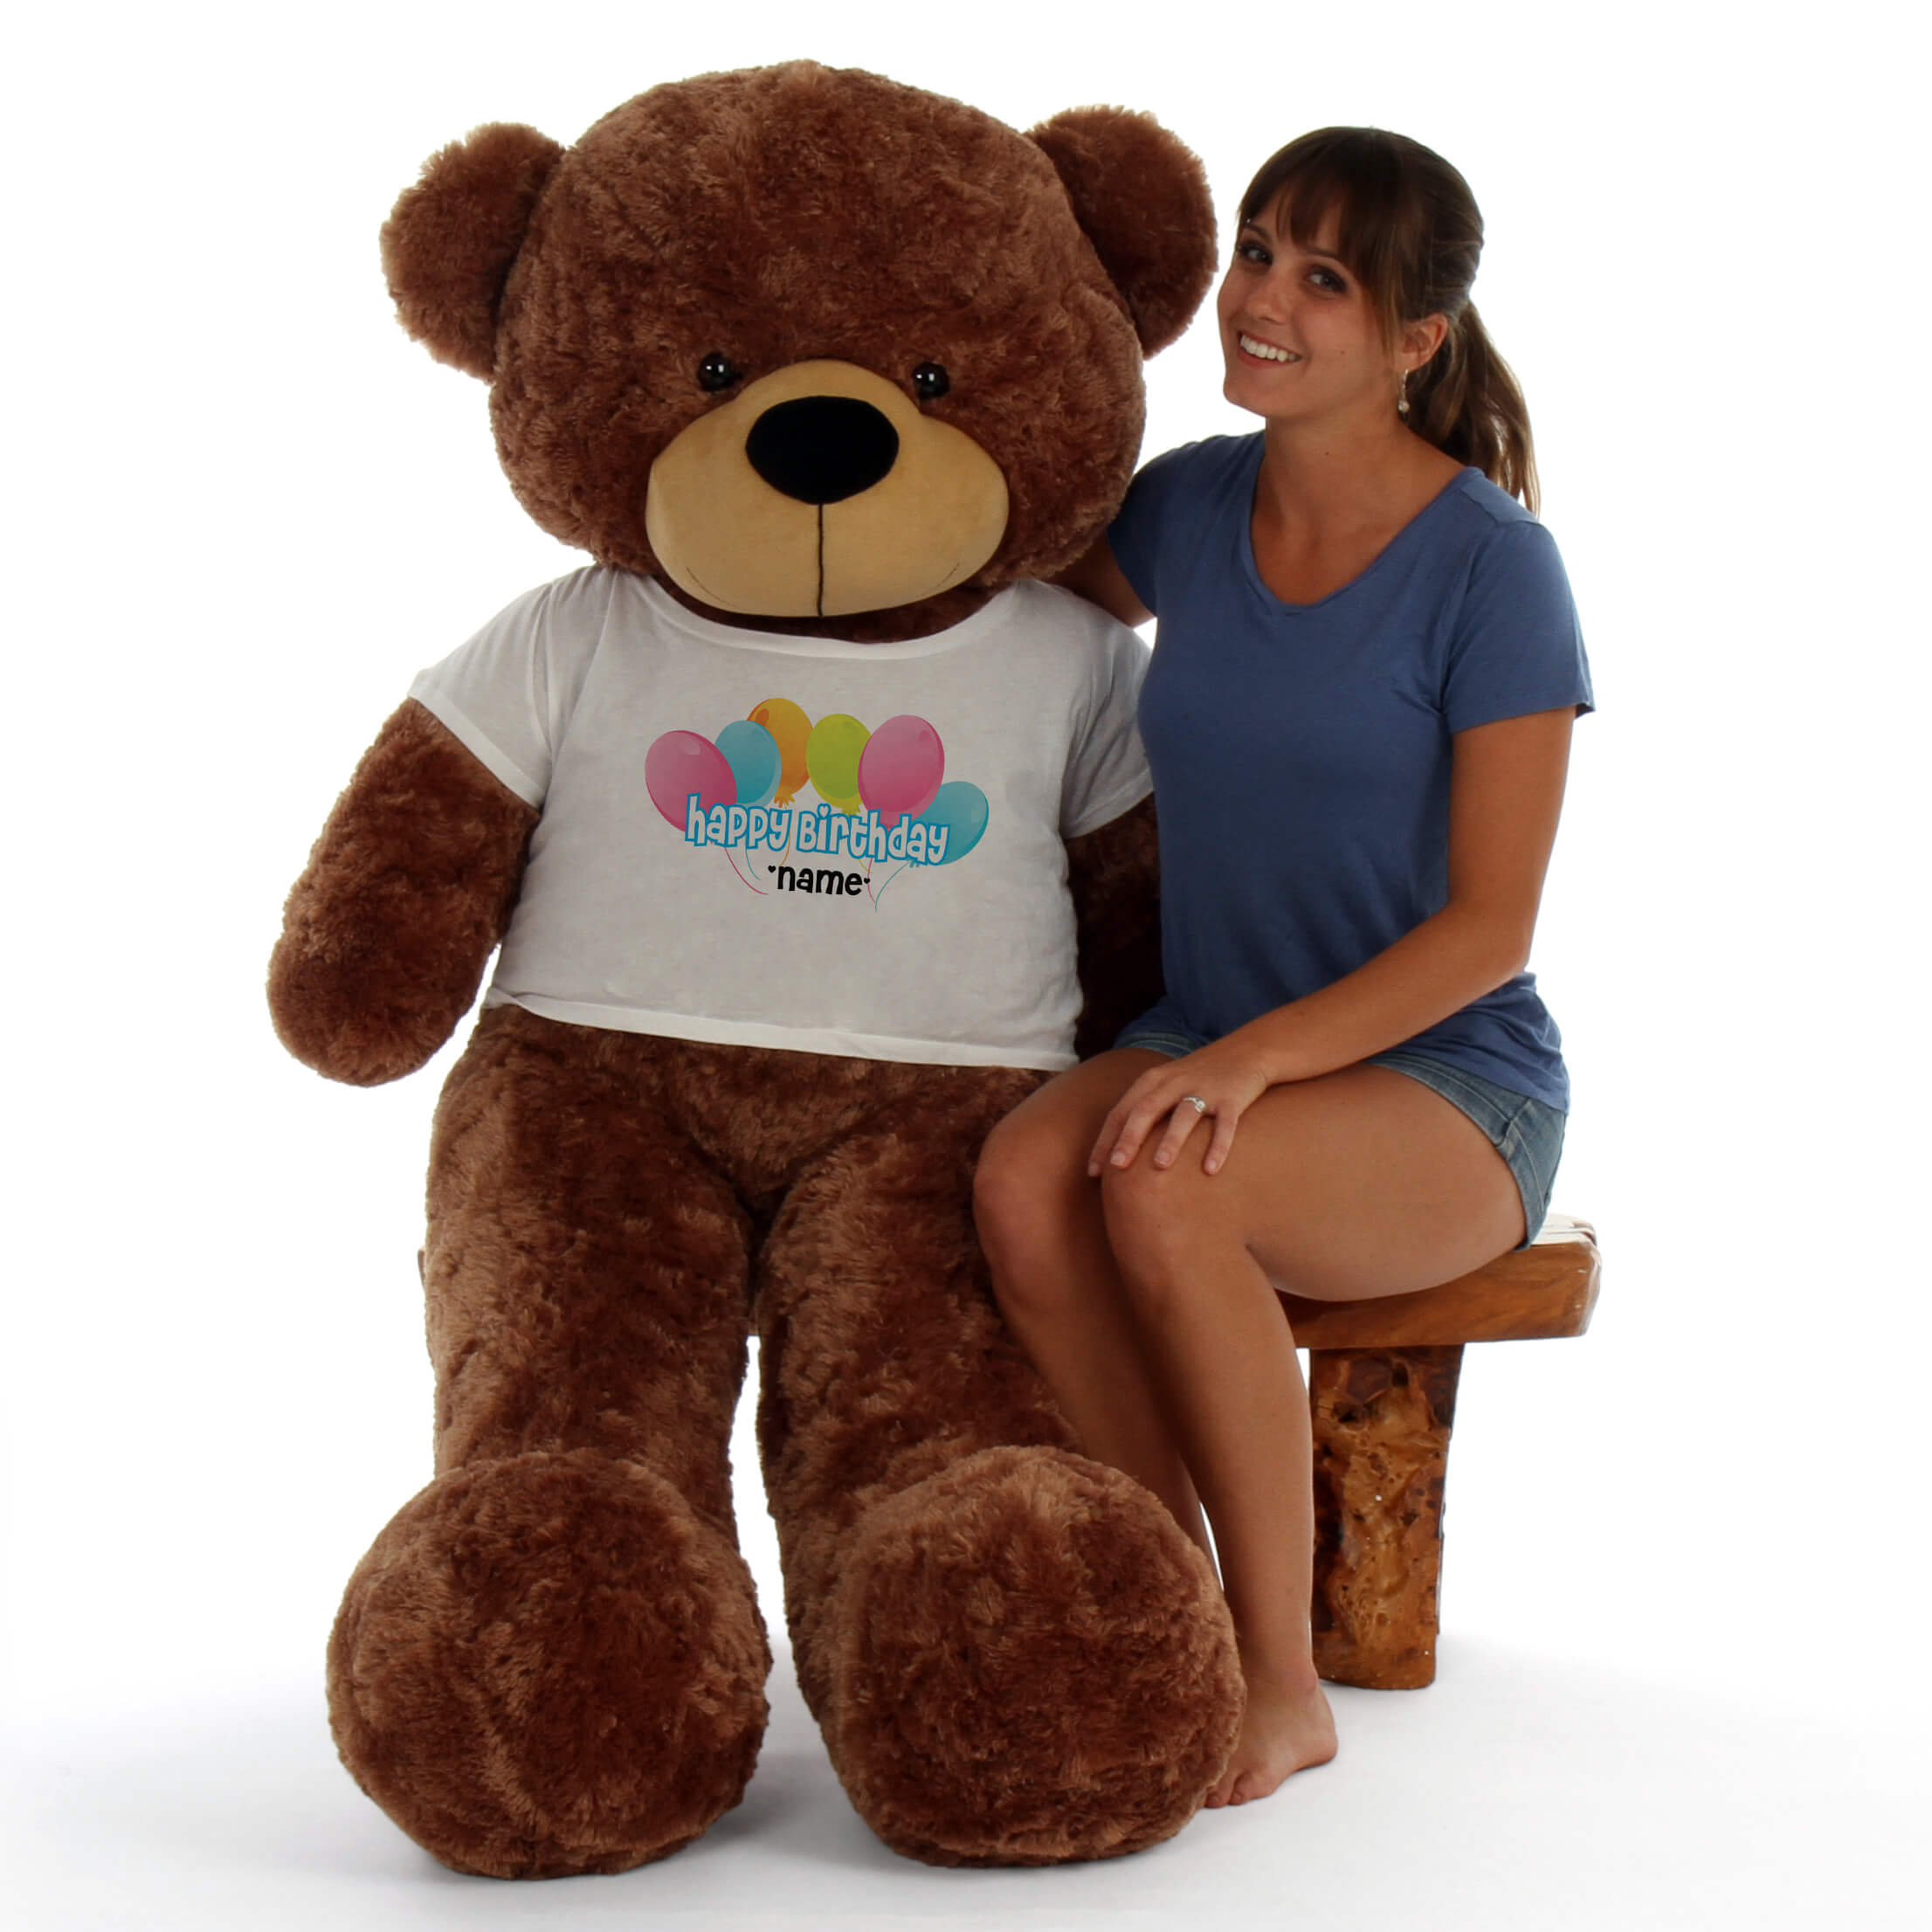 5ft-giant-sunny-cuddles-mocha-brown-teddy-bear-in-happy-birthday-balloons-t-shirt1.jpg